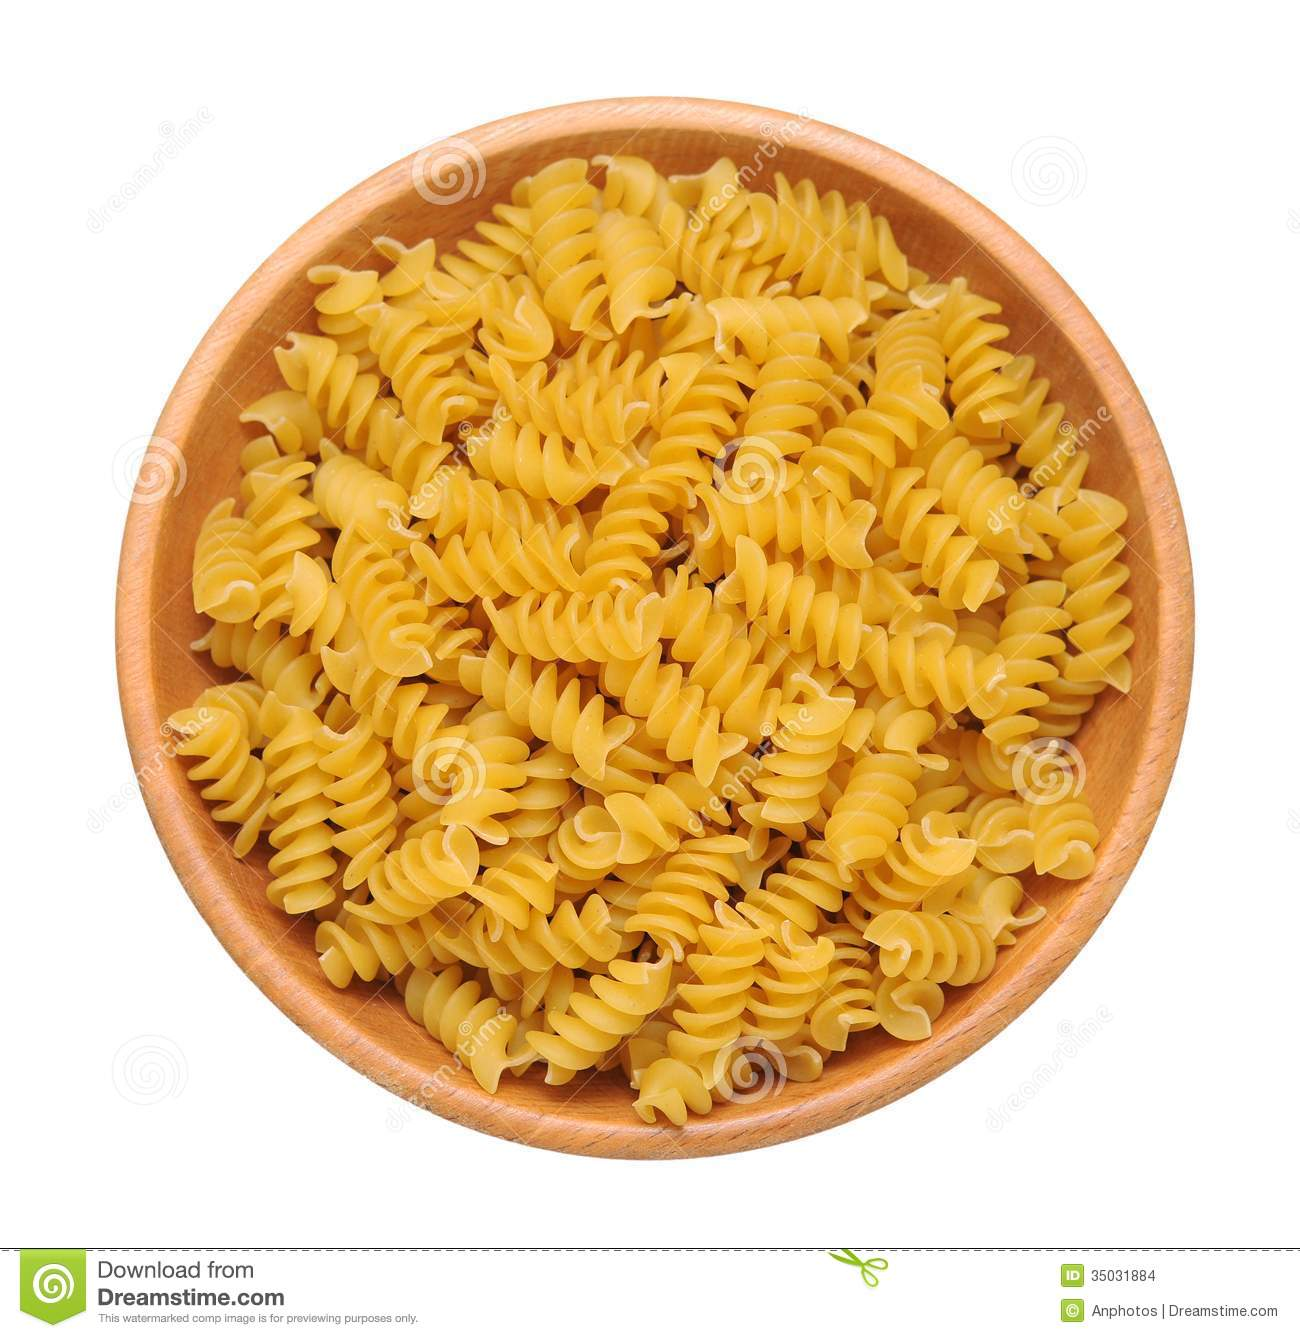 how to make rotini noodles